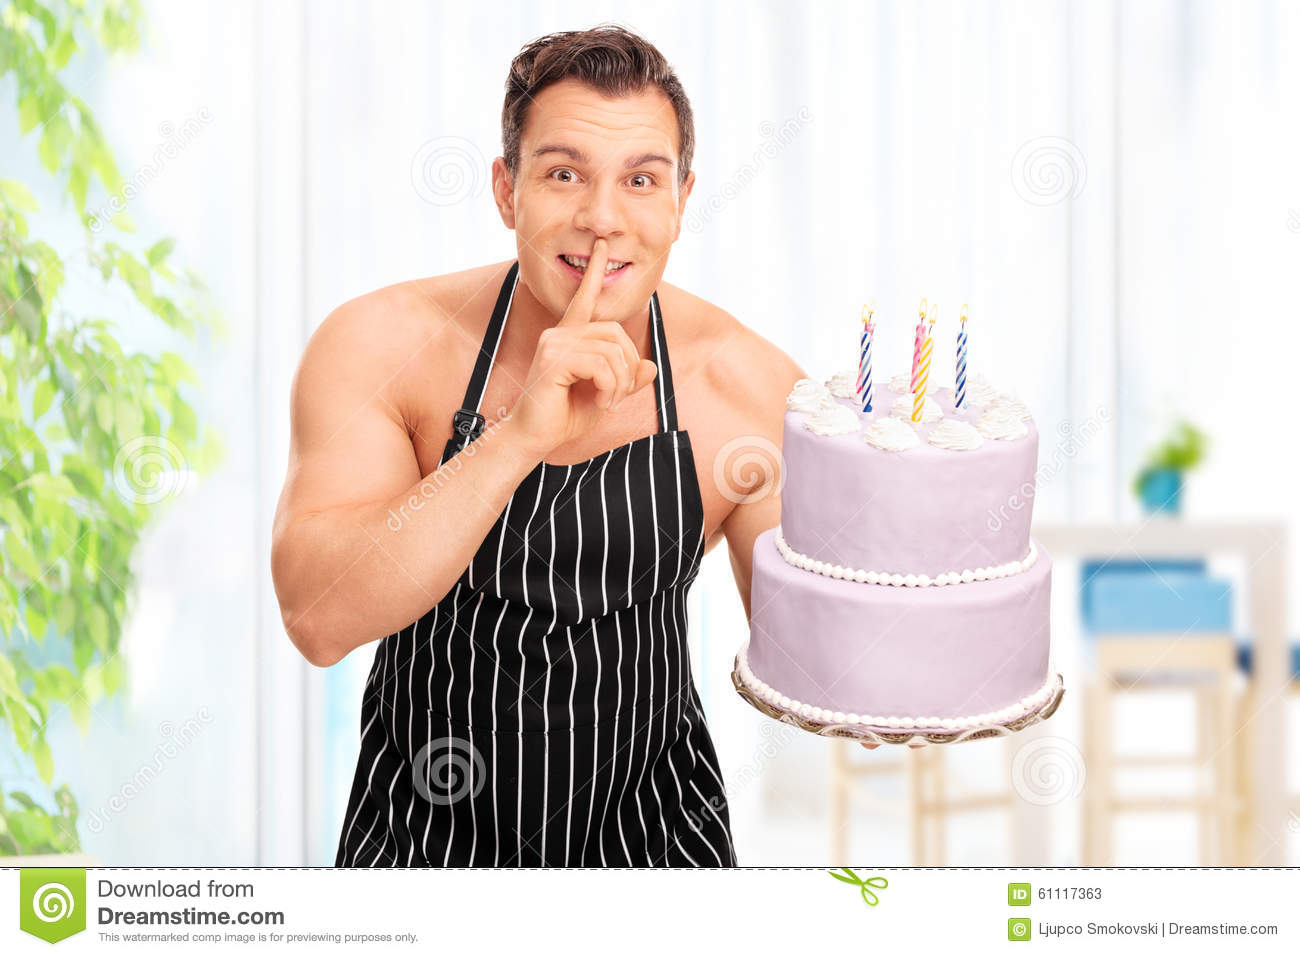 naked man on cake